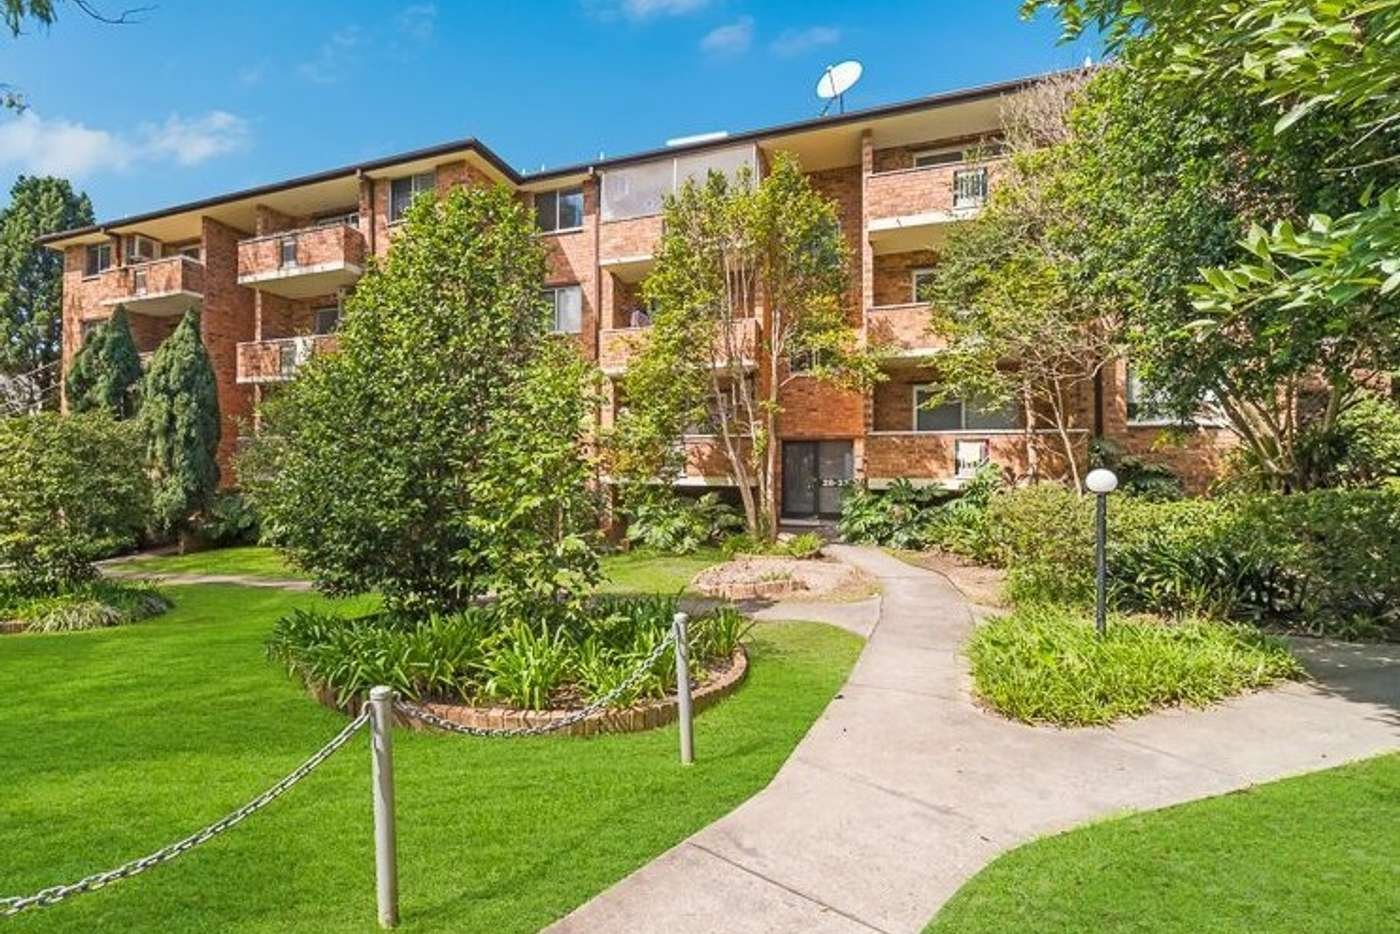 Main view of Homely unit listing, 6/34-38 Burdett Street, Hornsby NSW 2077